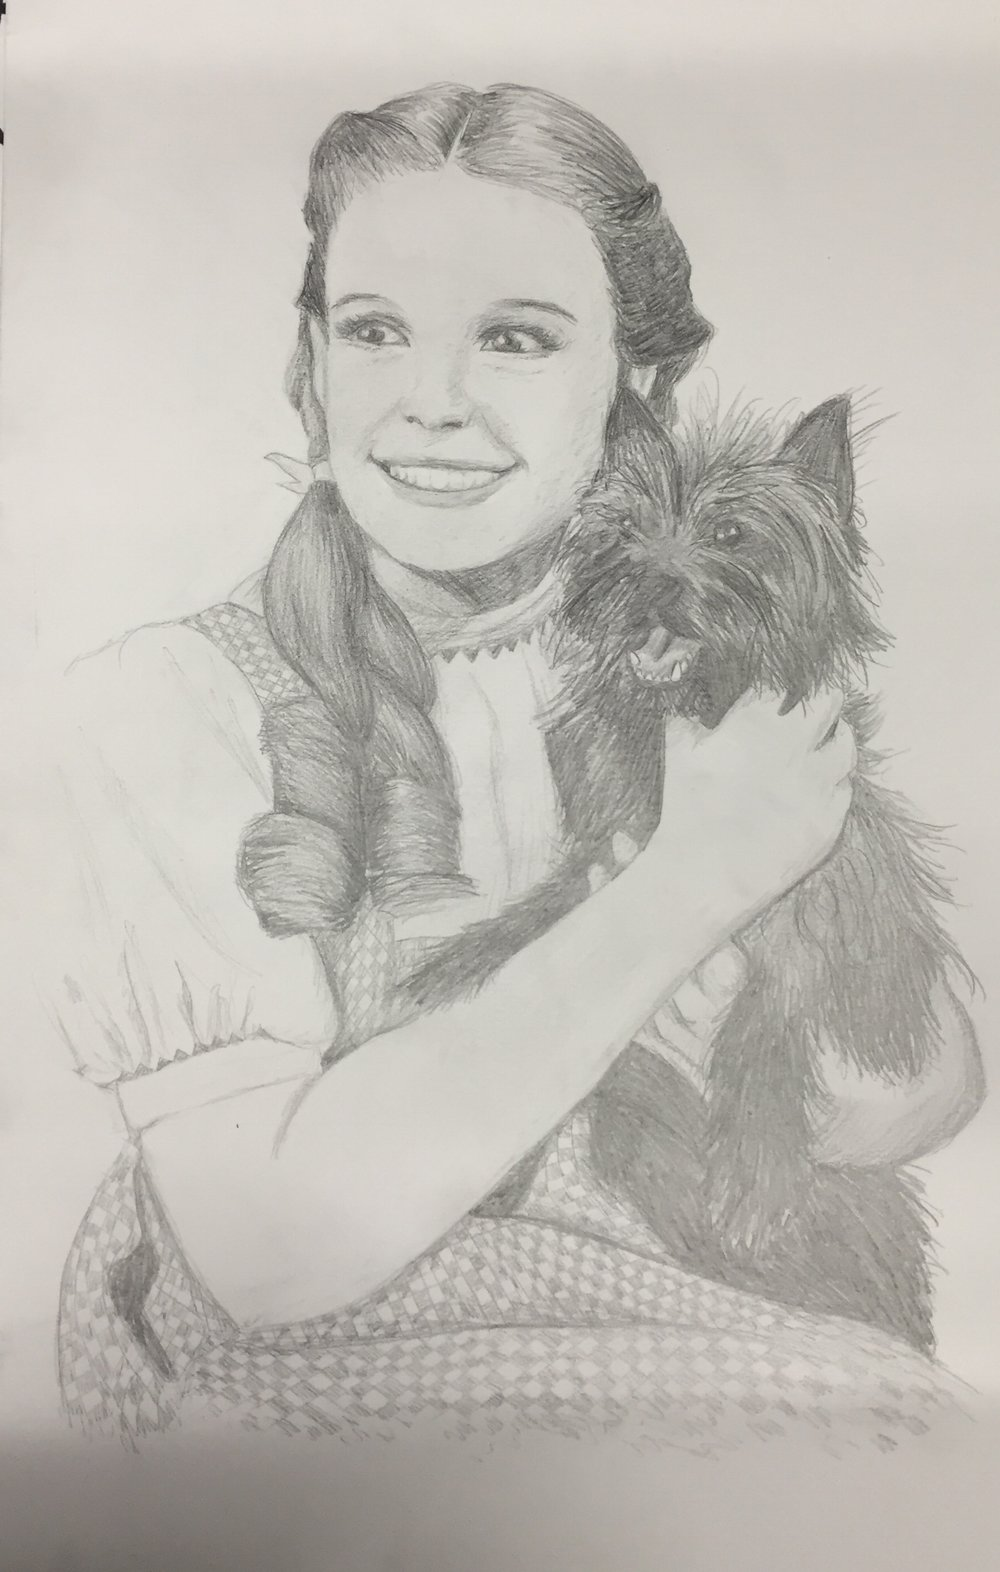 Copy of The Wizard of Oz